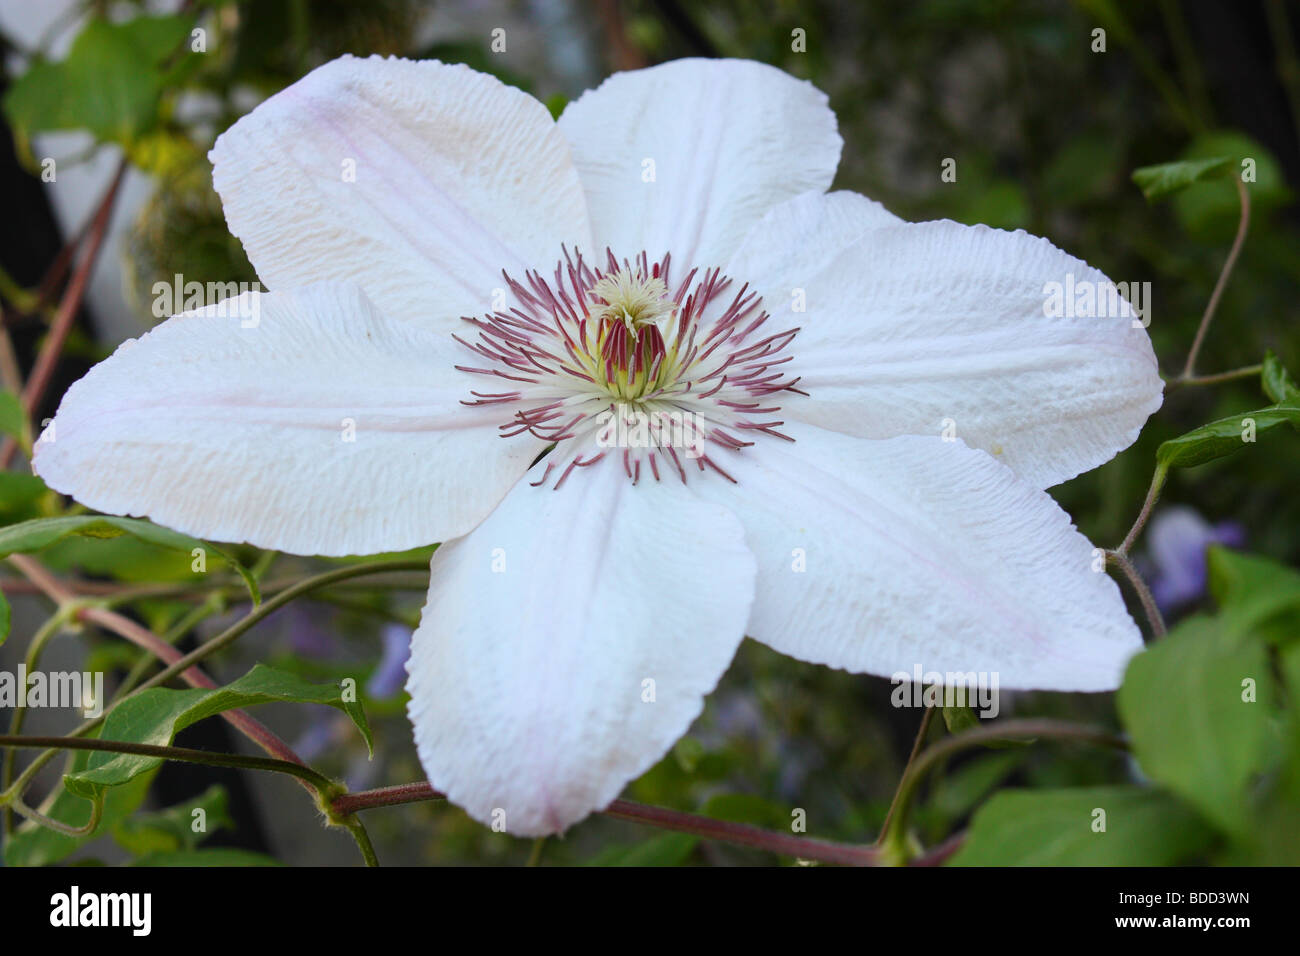 White flower farm clematis choice image flower decoration ideas fantastic white flower farm clematis component images for wedding beautiful white flower farm clematis pattern images mightylinksfo